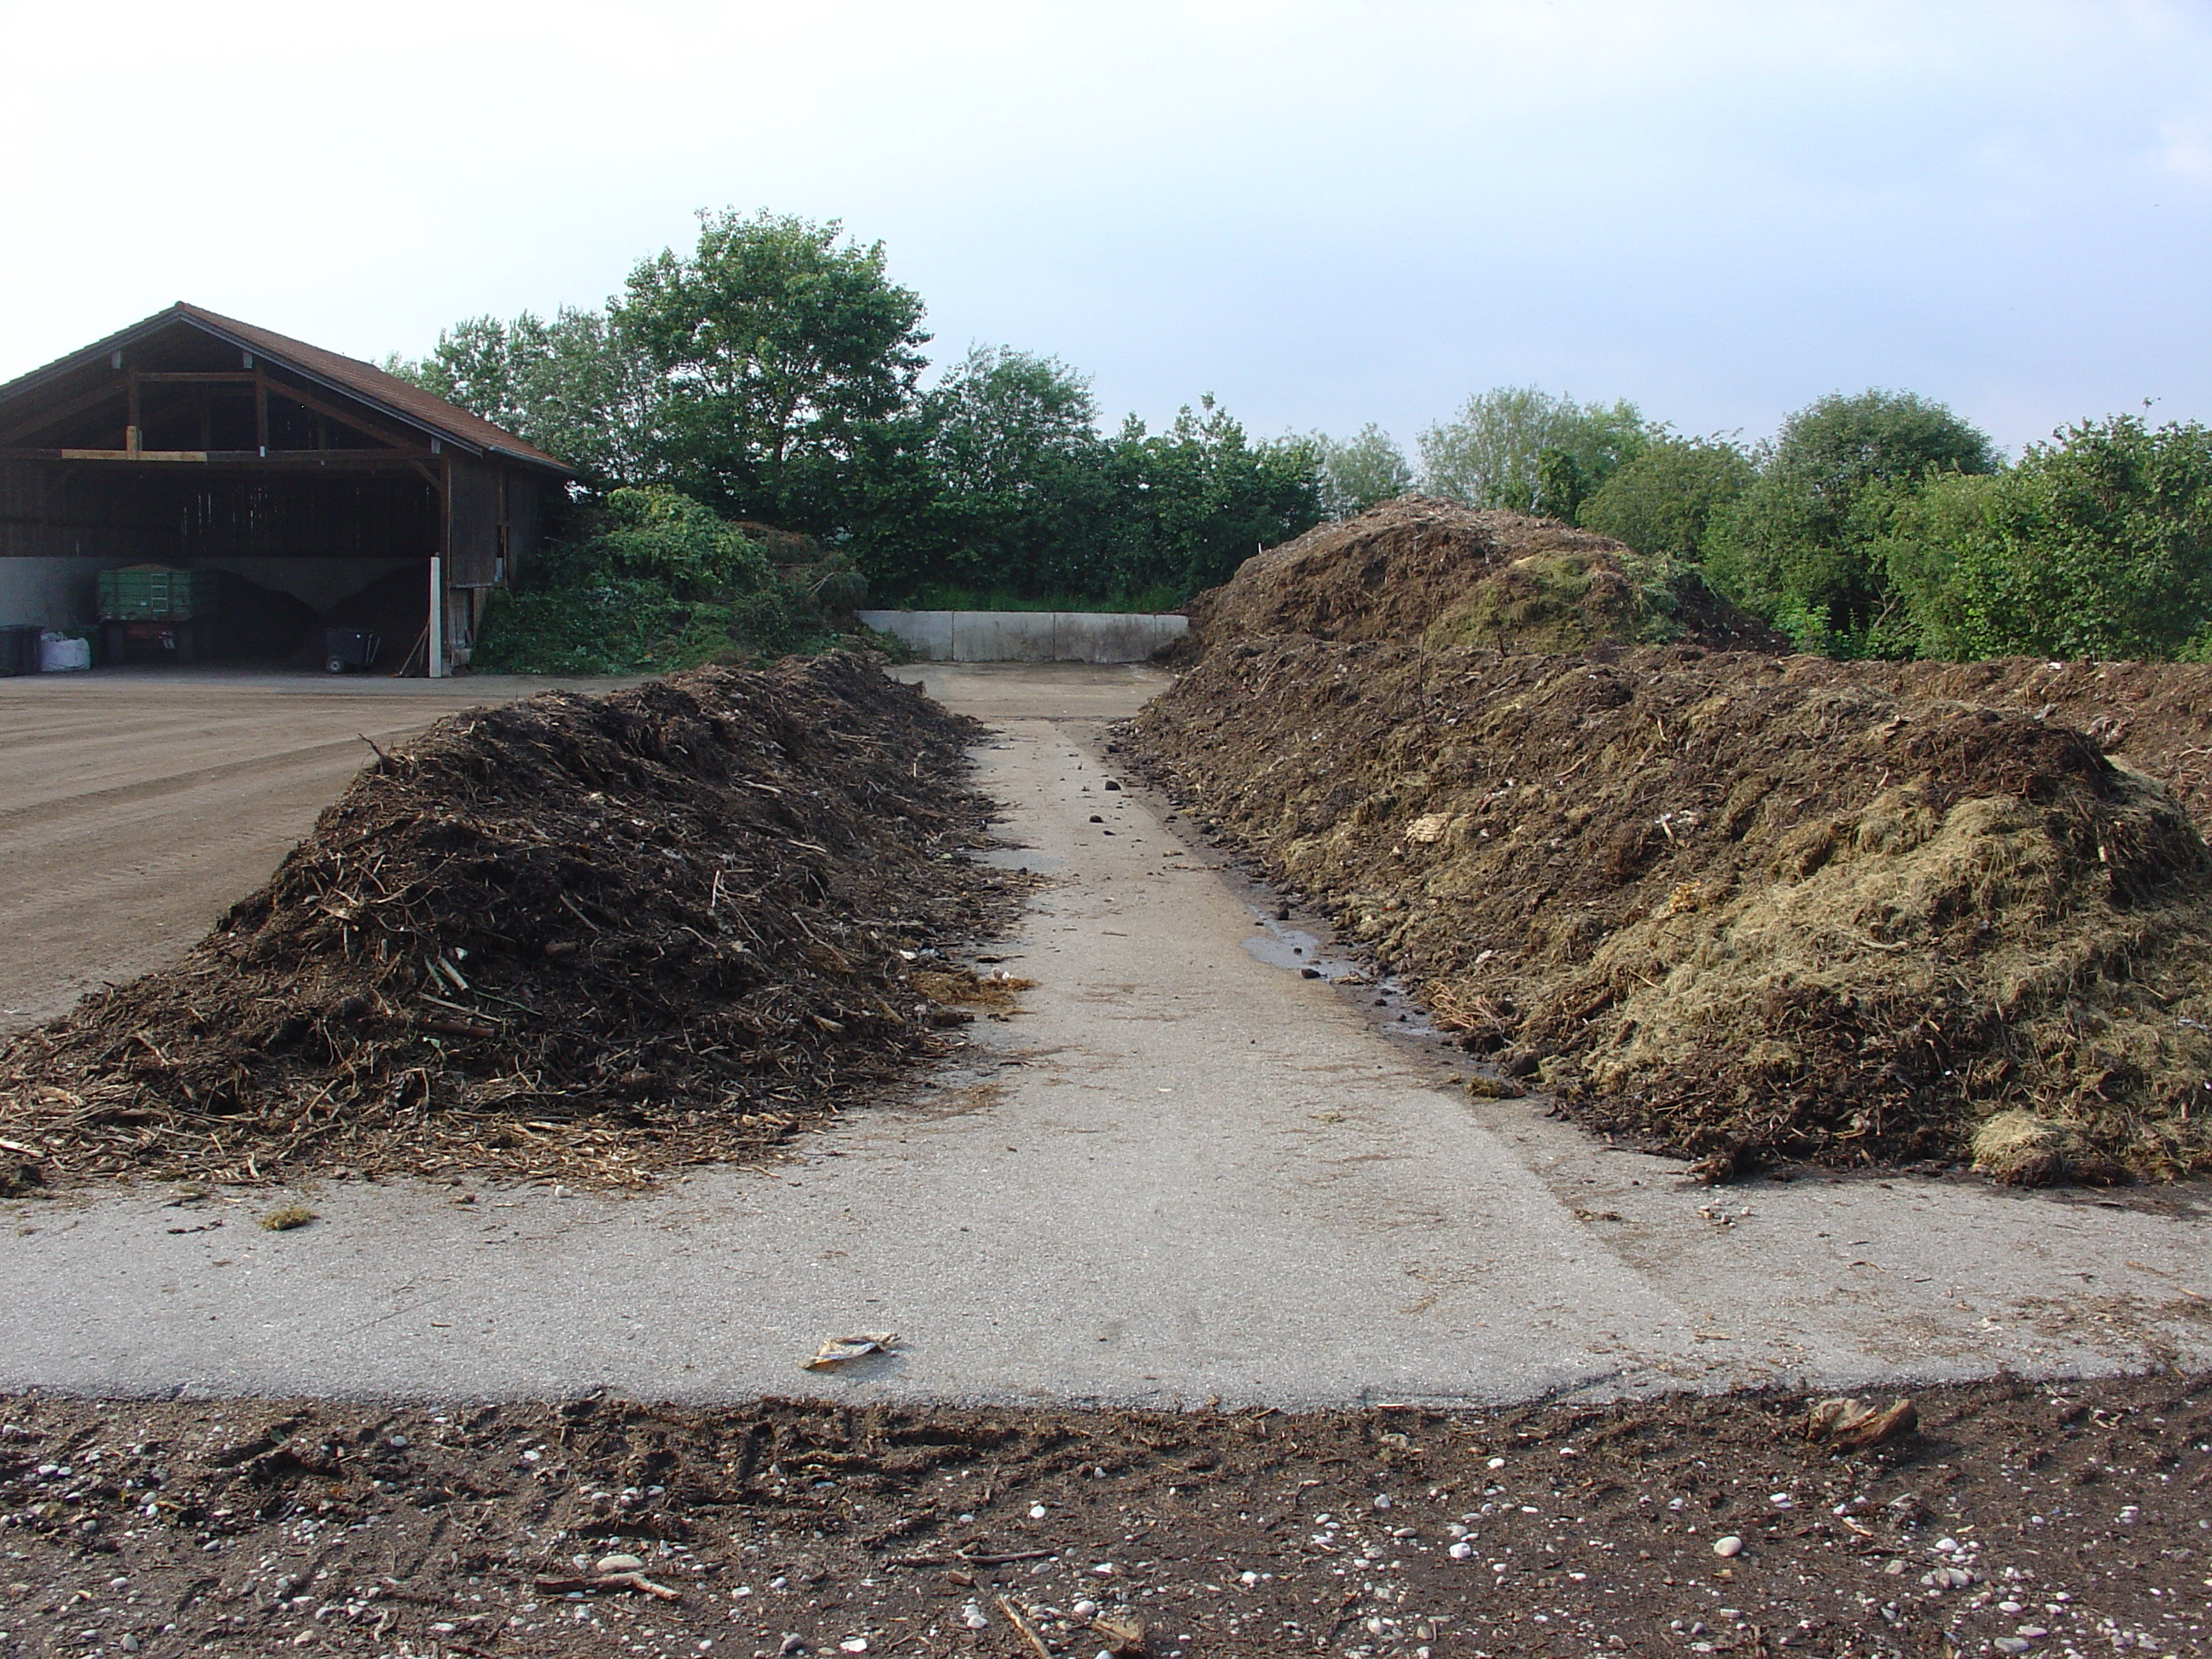 composting is a waste disposal method that